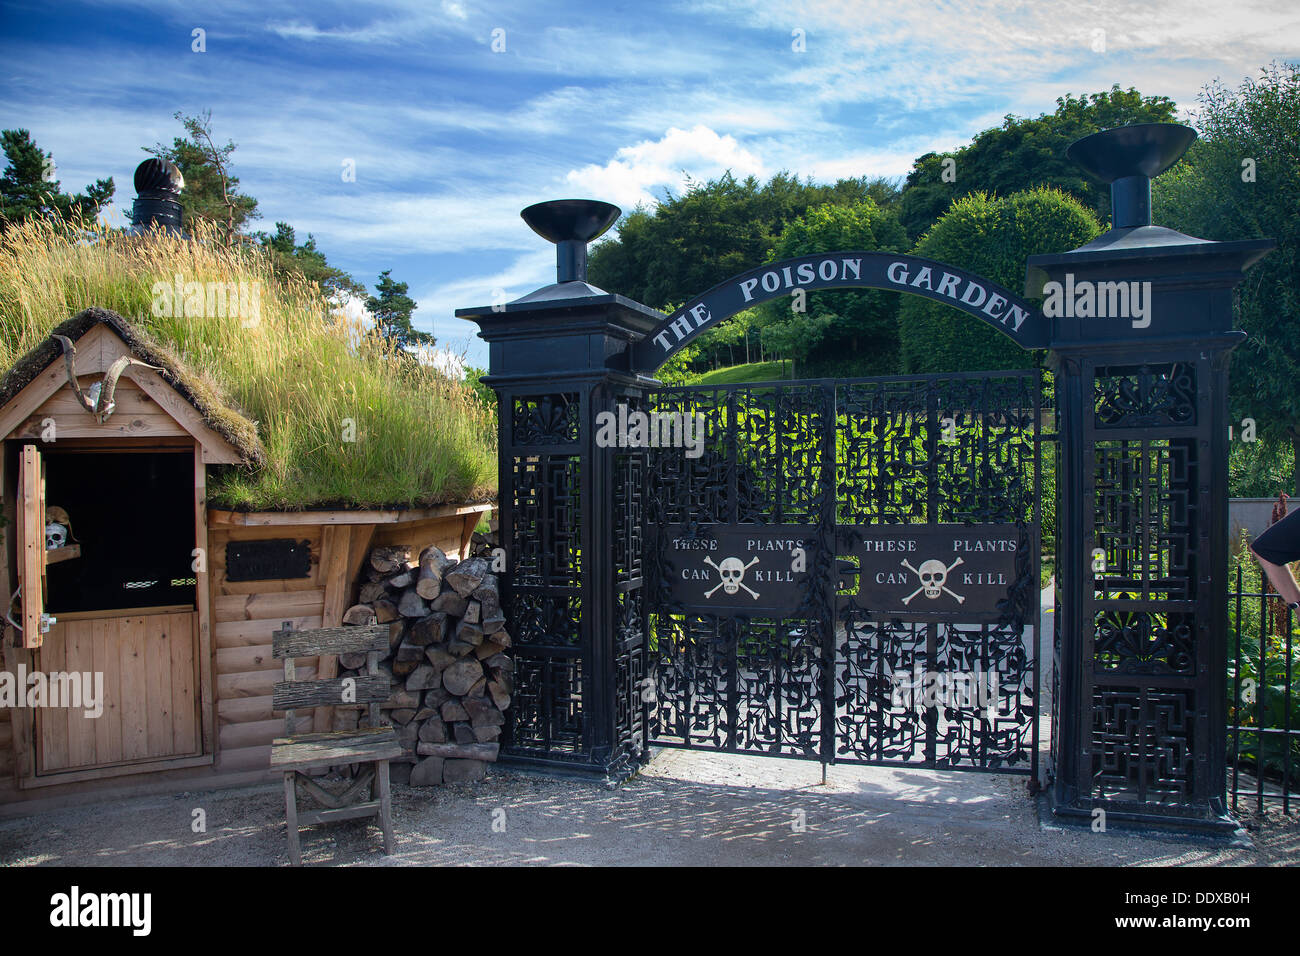 The Poison Garden entrance gates and guard station, Alnwick Gardens, Northumberland - Stock Image